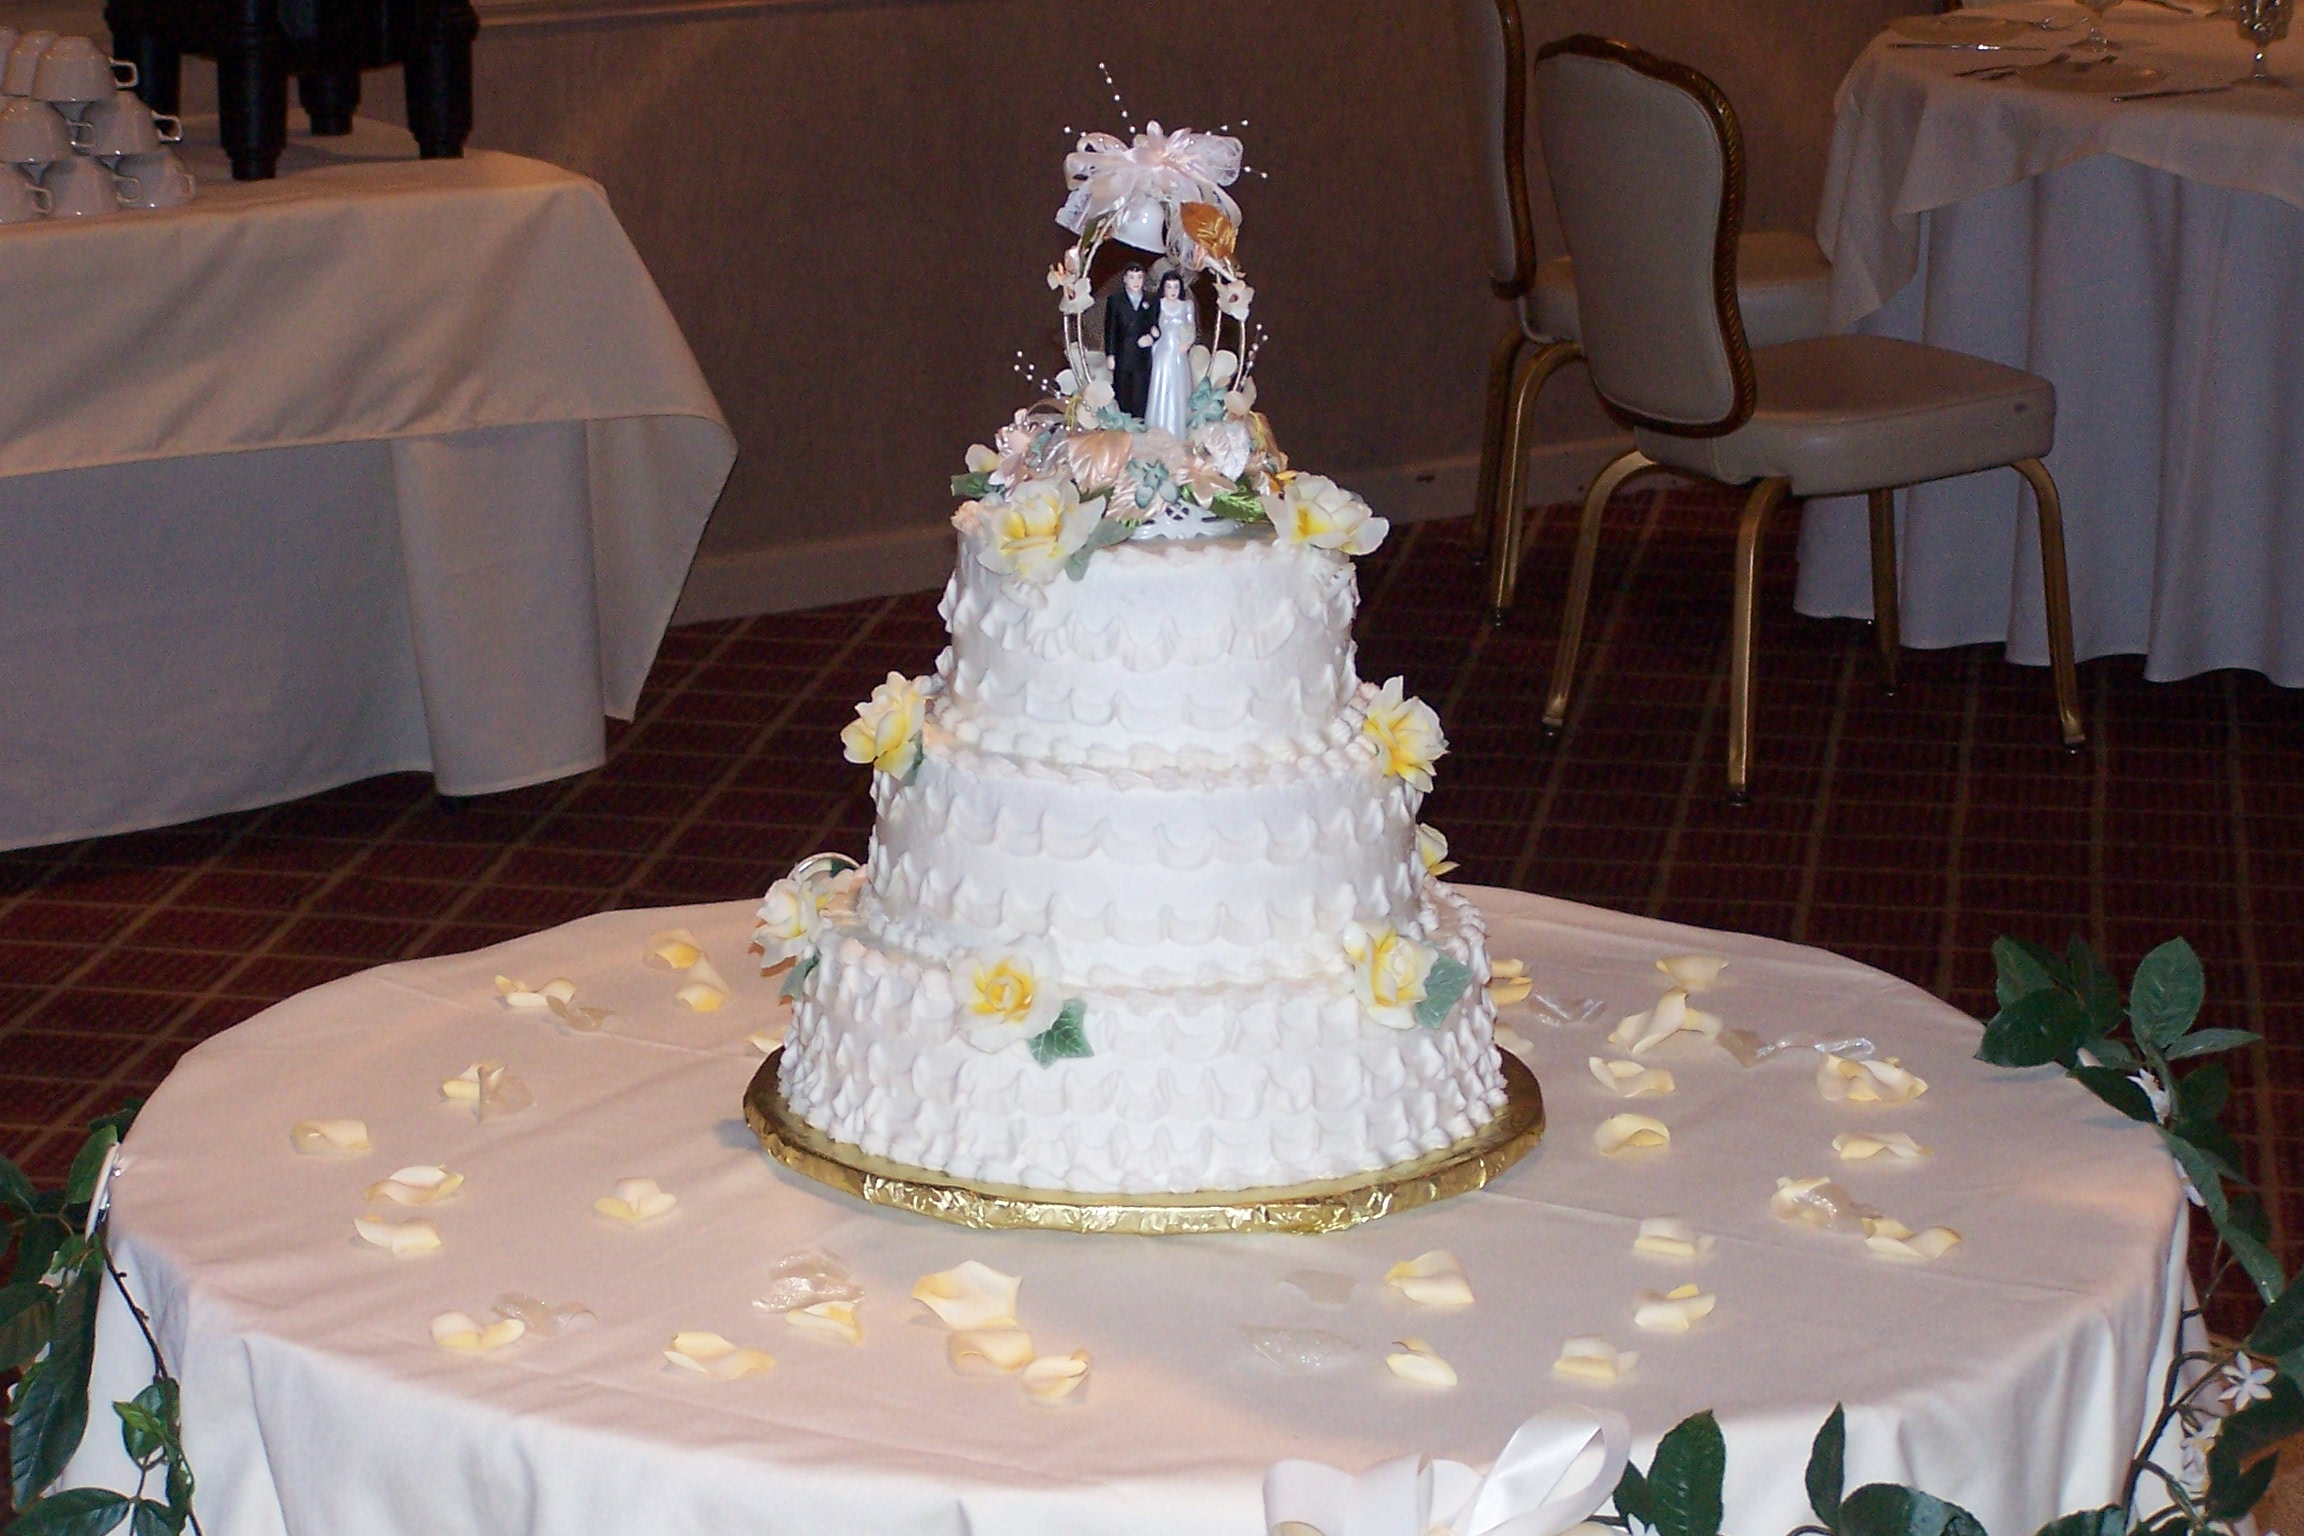 25 of the best food truck designs design galleries paste - Photos Custom Wedding Cakes And Designer Specialty Cakes Cleveland Catering